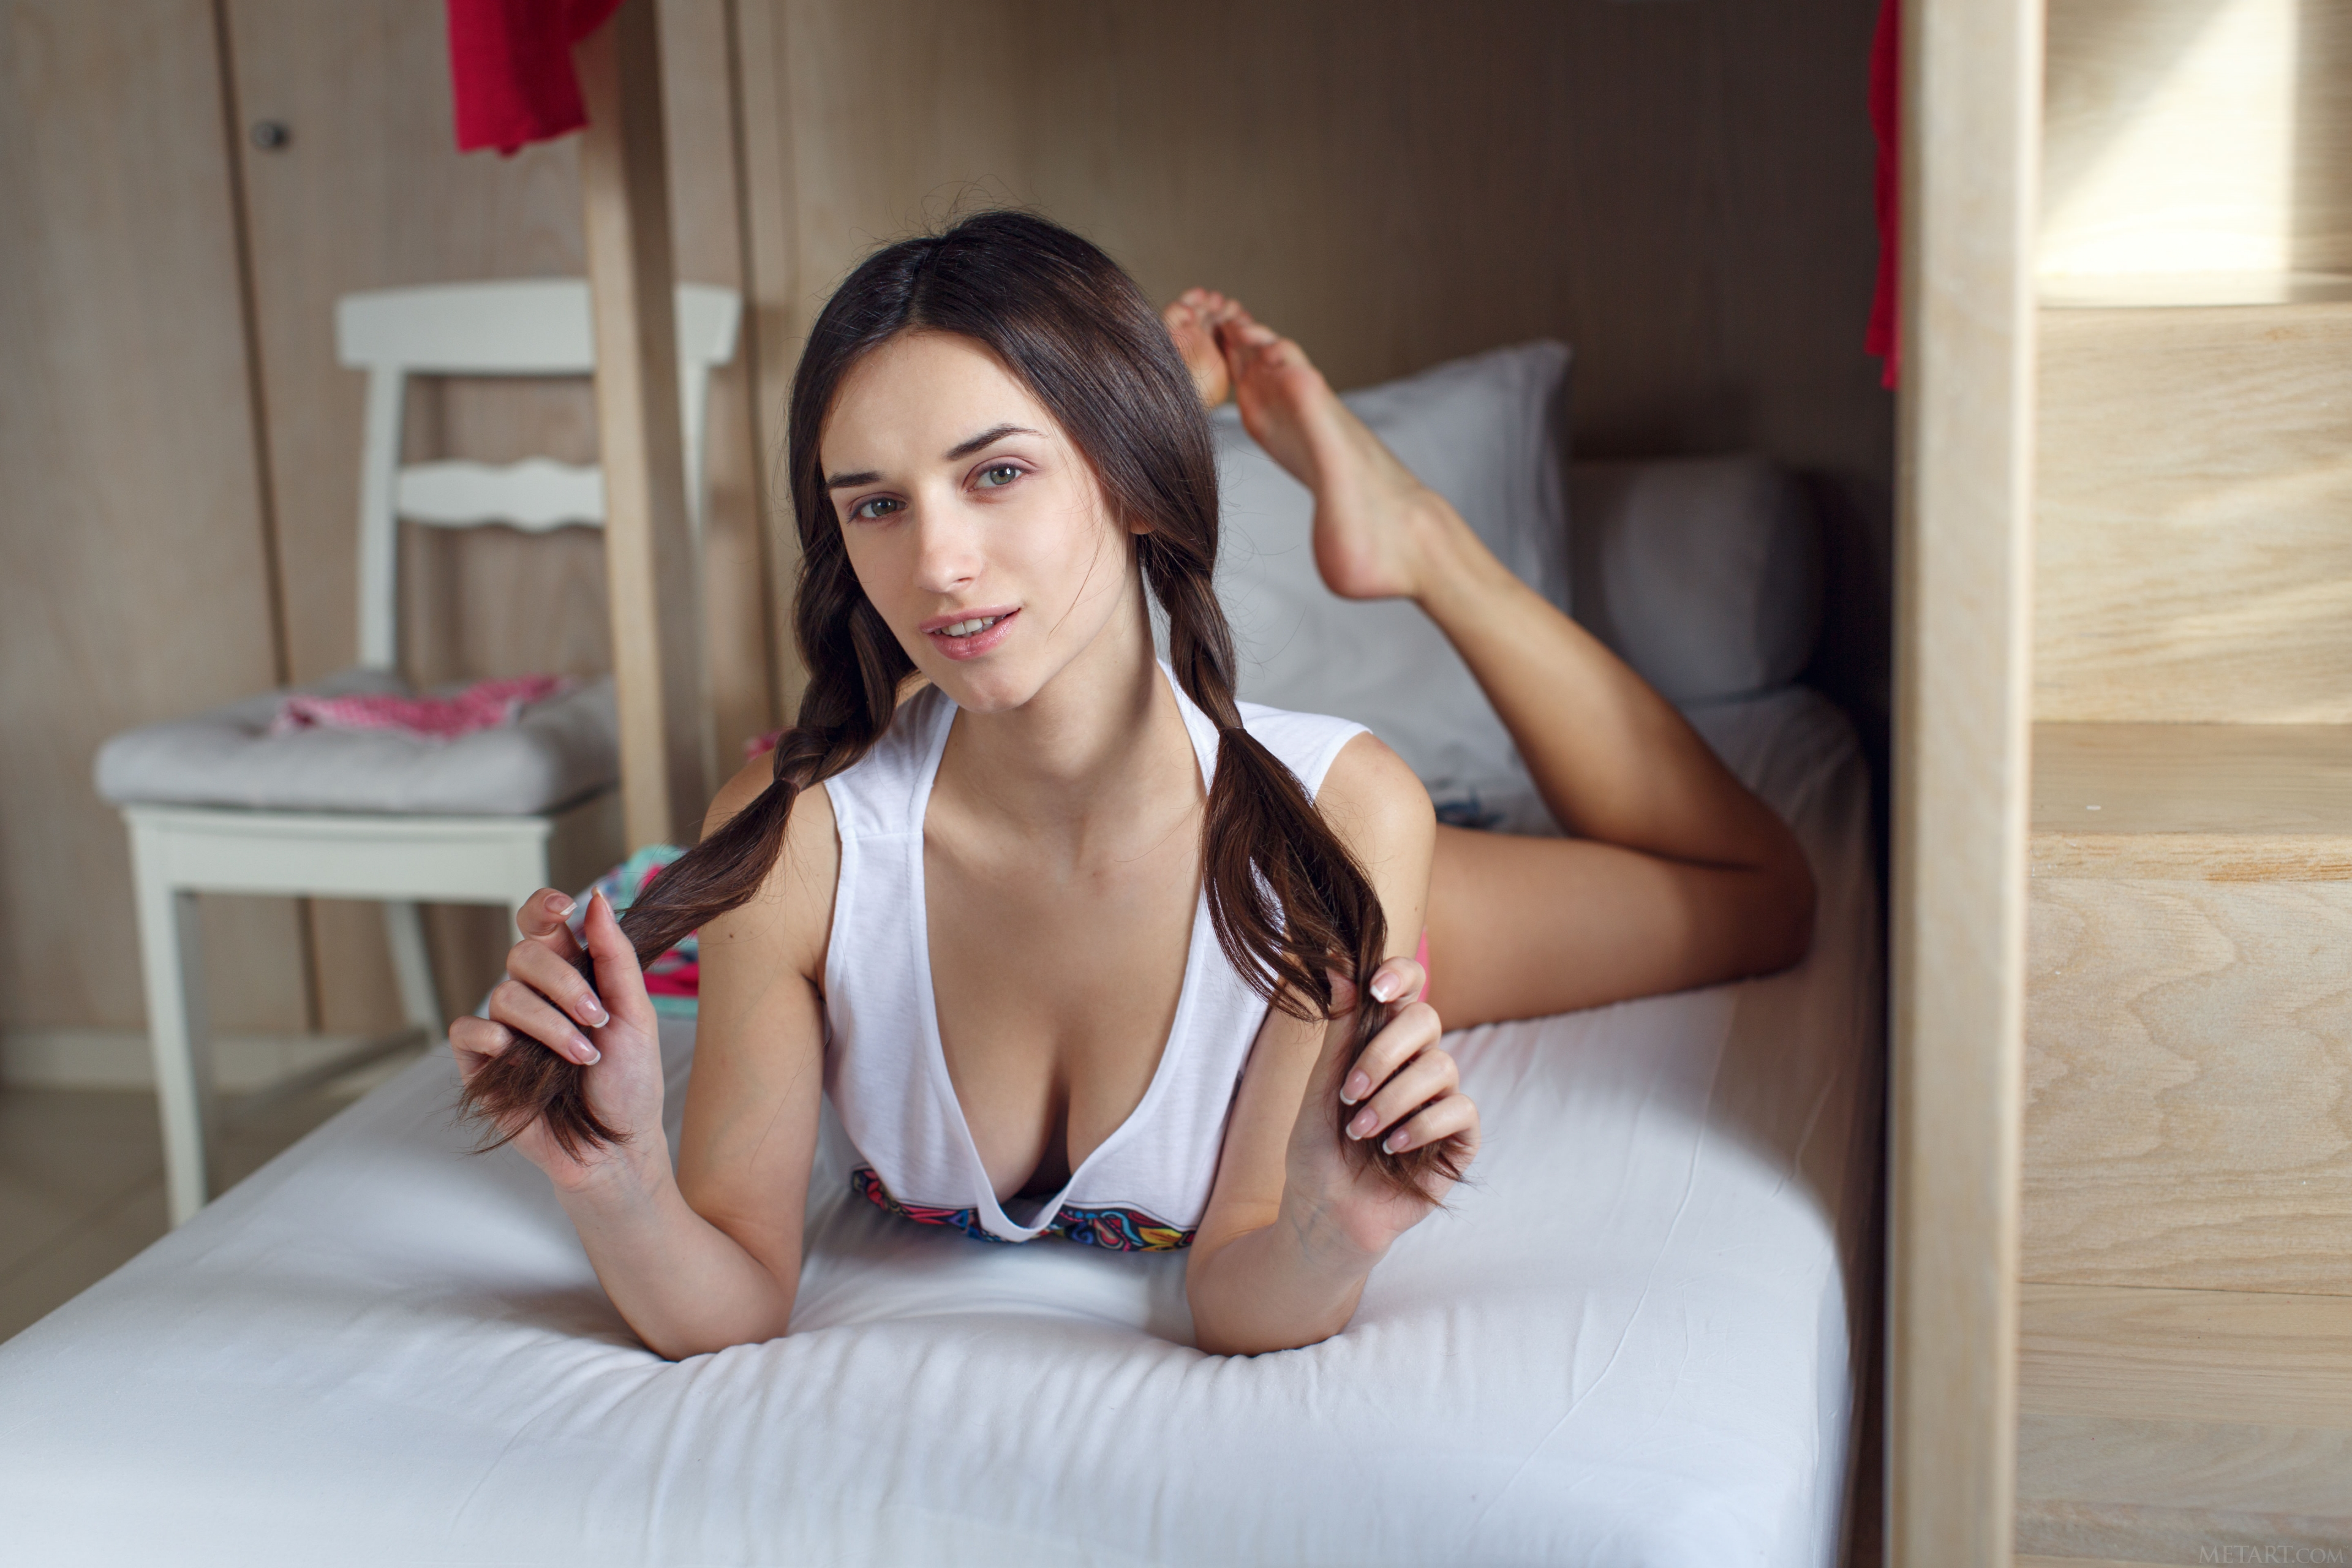 Women Model Brunette Looking At Viewer Parted Lips Smiling Pigtails In Bed Depth Of Field Tank Top W 3840x2560